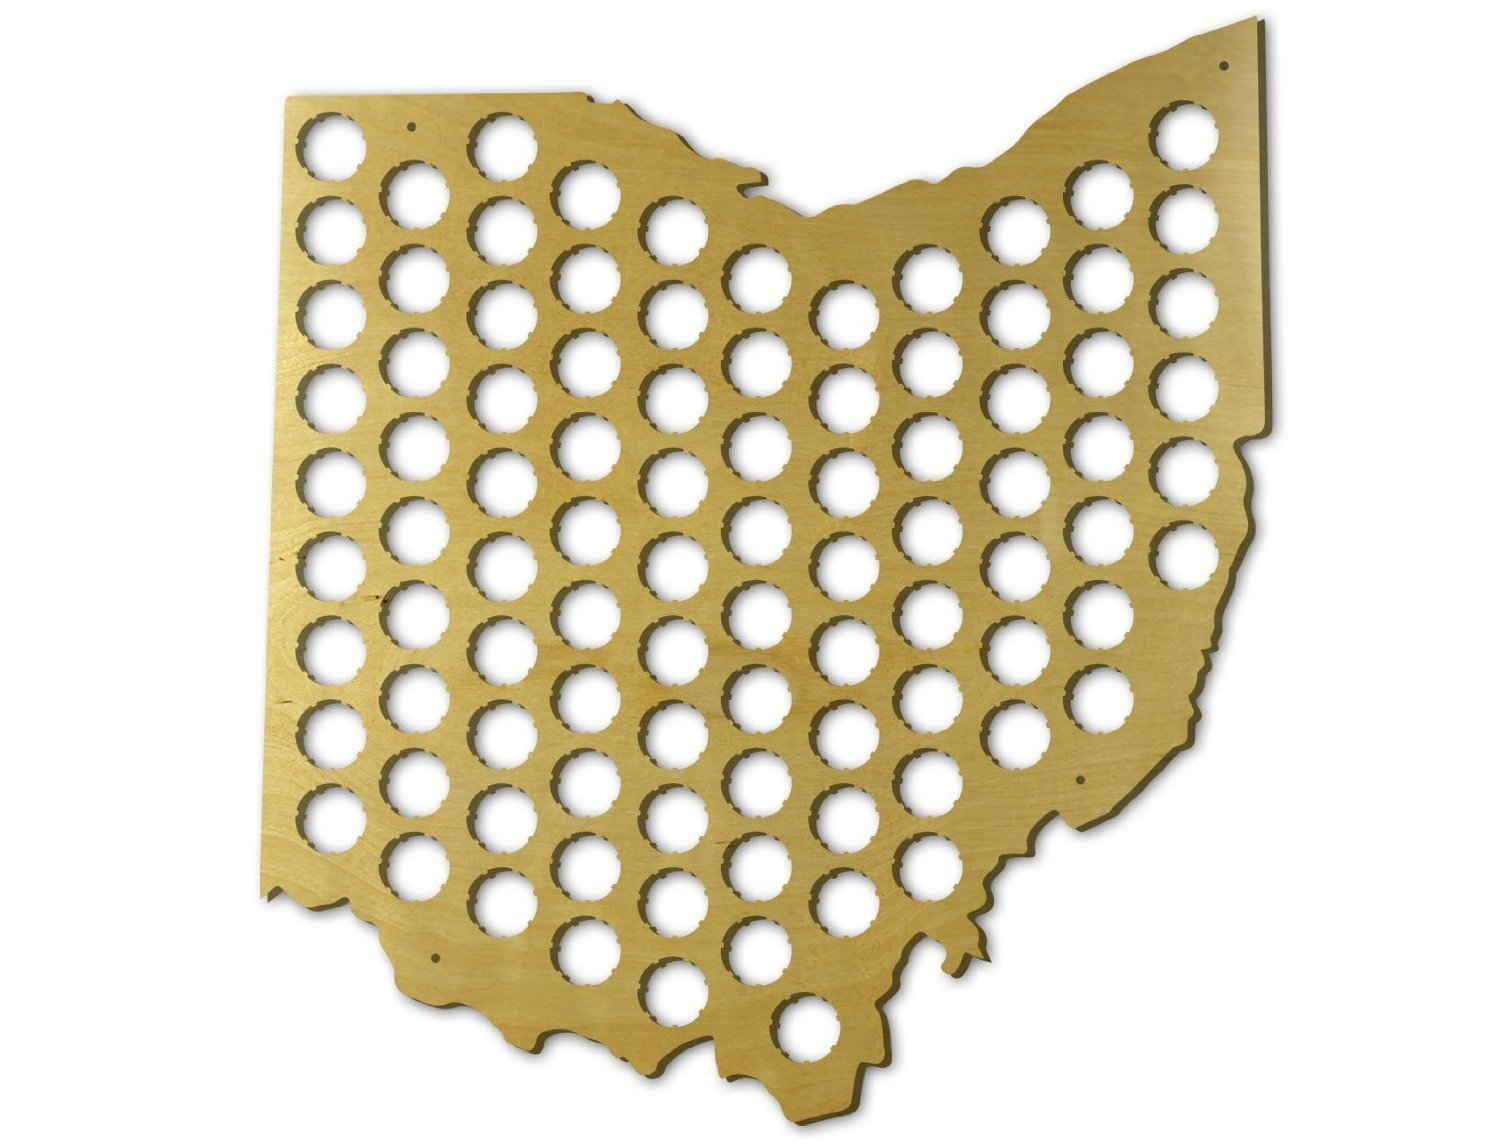 Amazon.com: Beer Cap Trap Ohio Beer Cap Map Wall Art, Tan: Kitchen ...